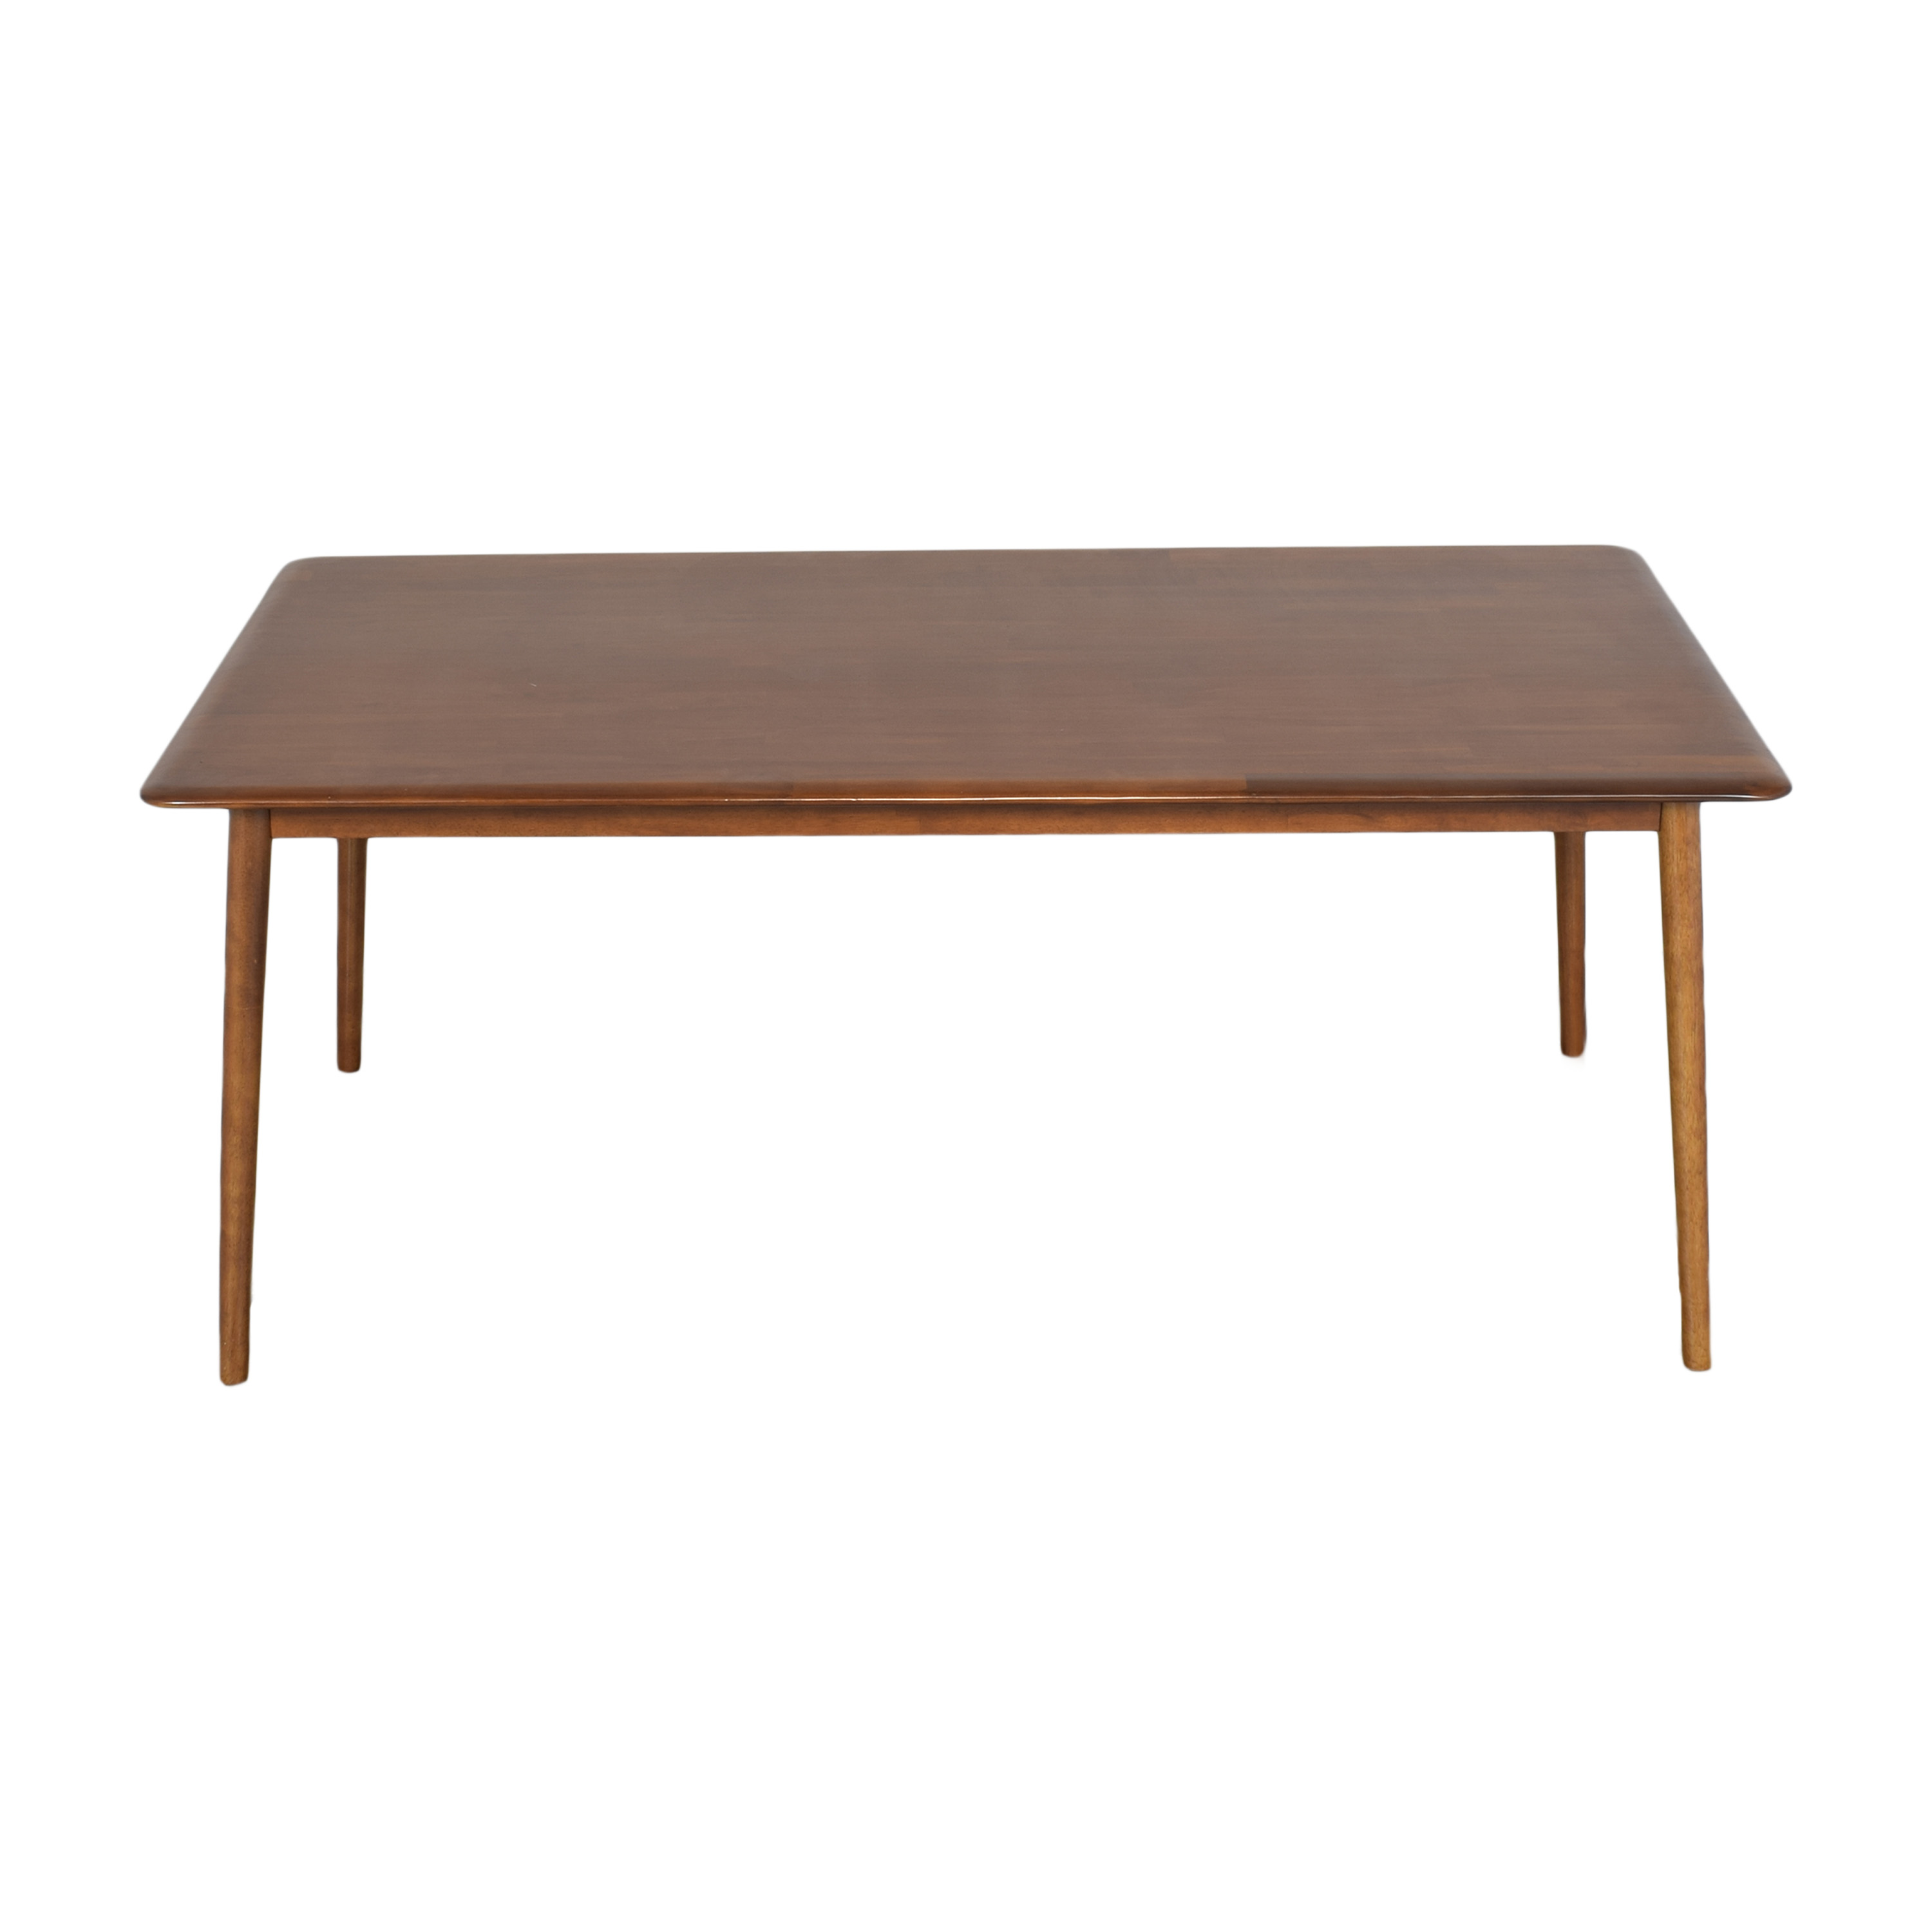 West Elm West Elm Lena Mid Century Dining Table dimensions